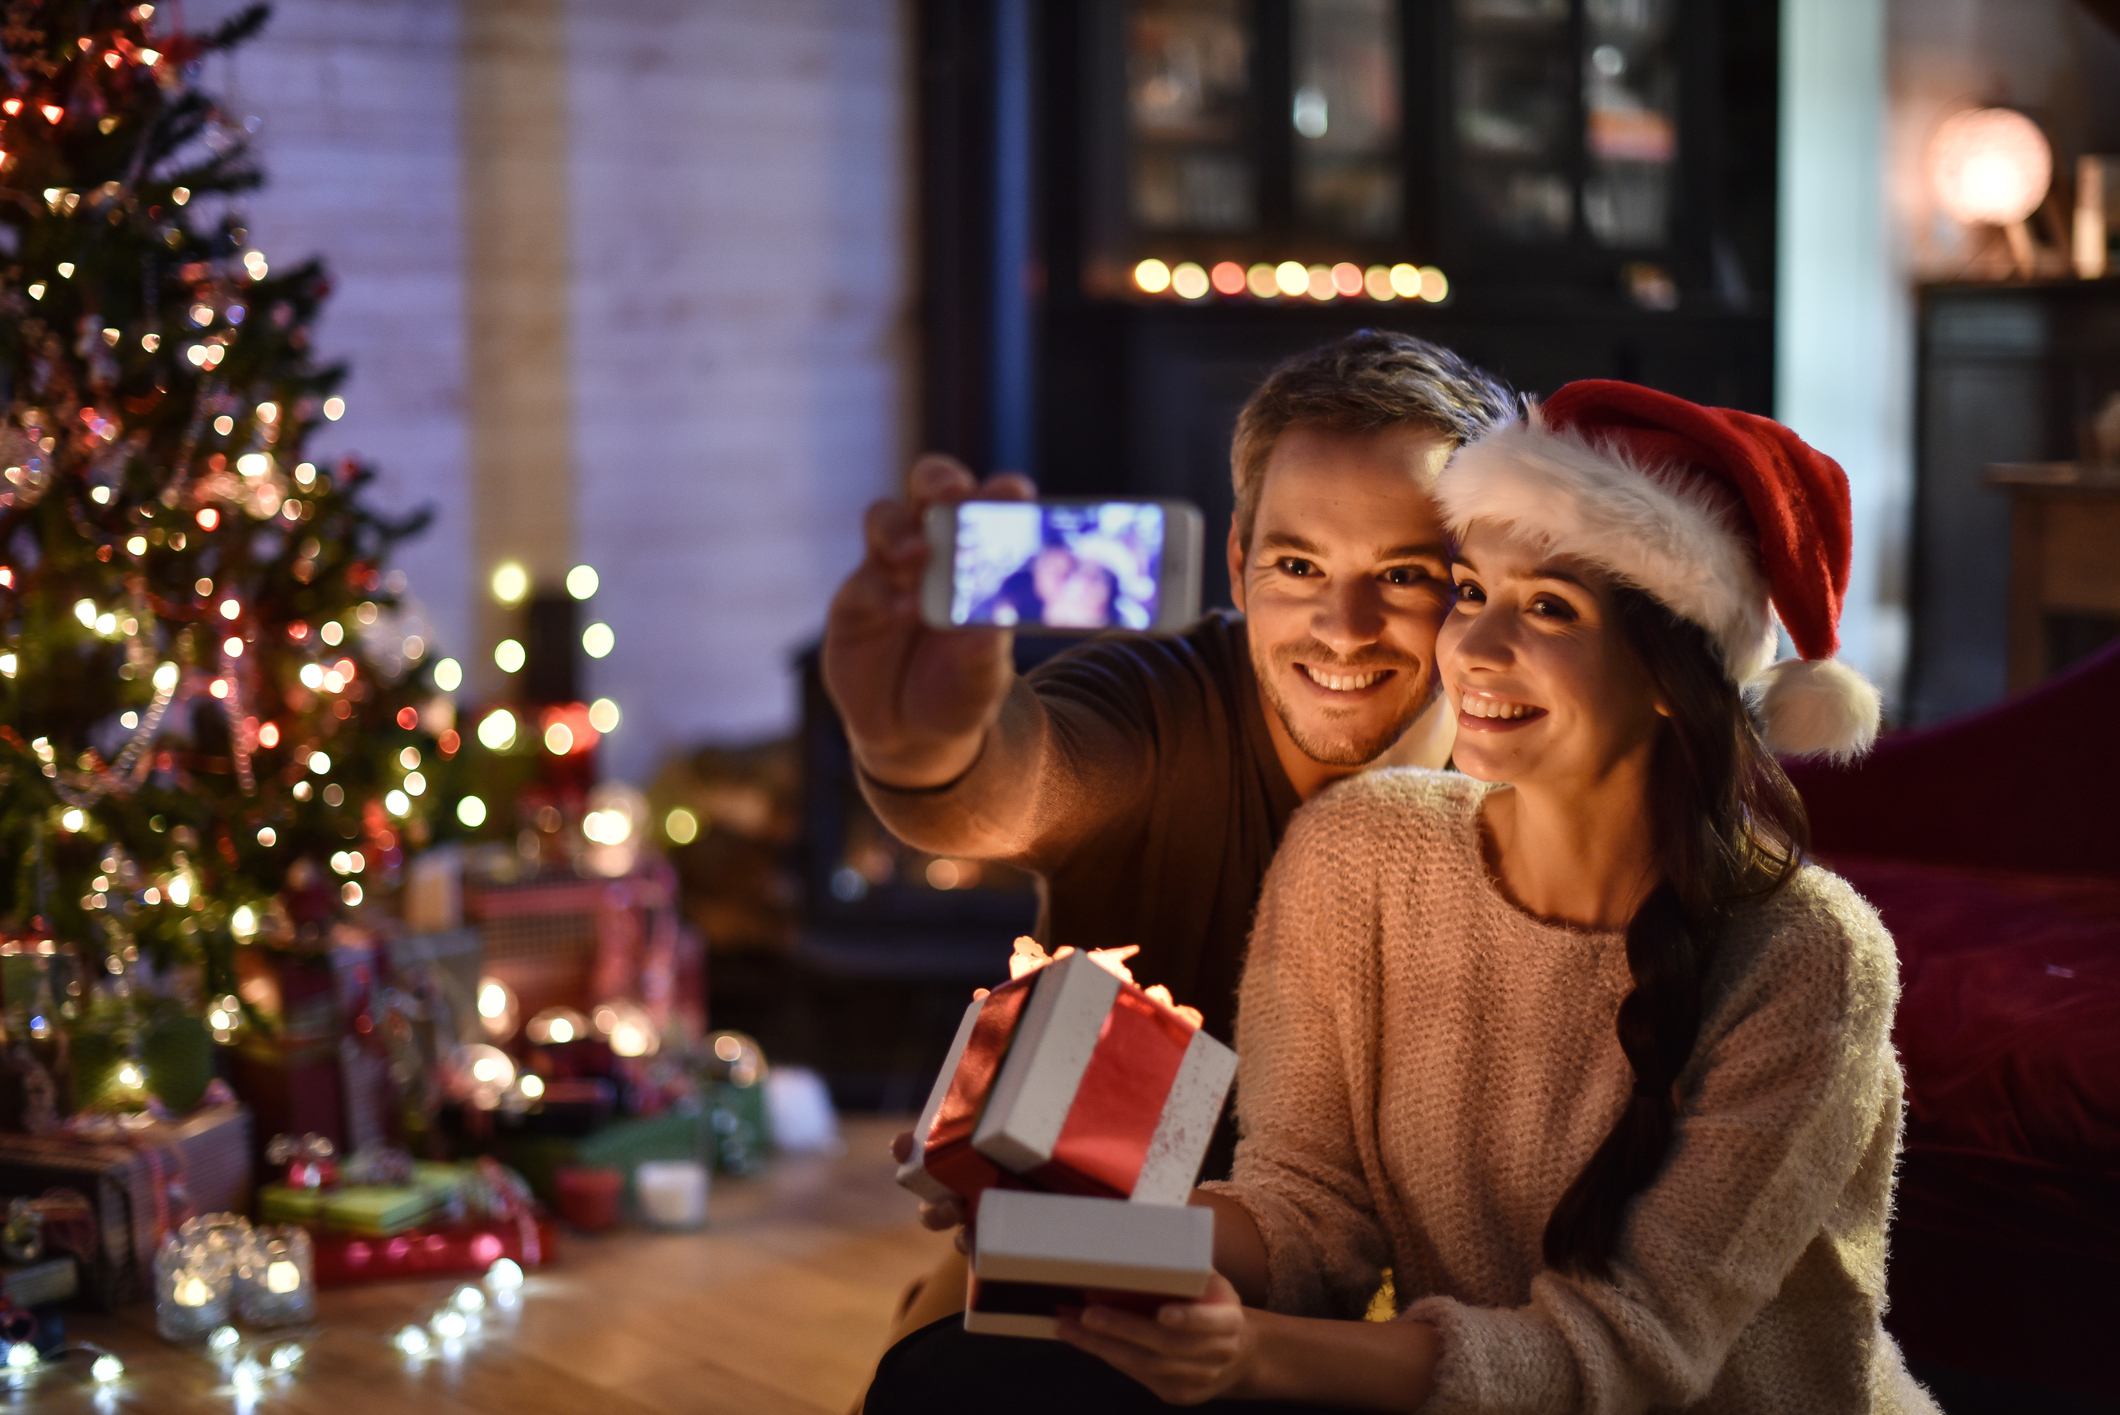 Couple opens gifts on Christmas Eve and takes selfie with new smartphone